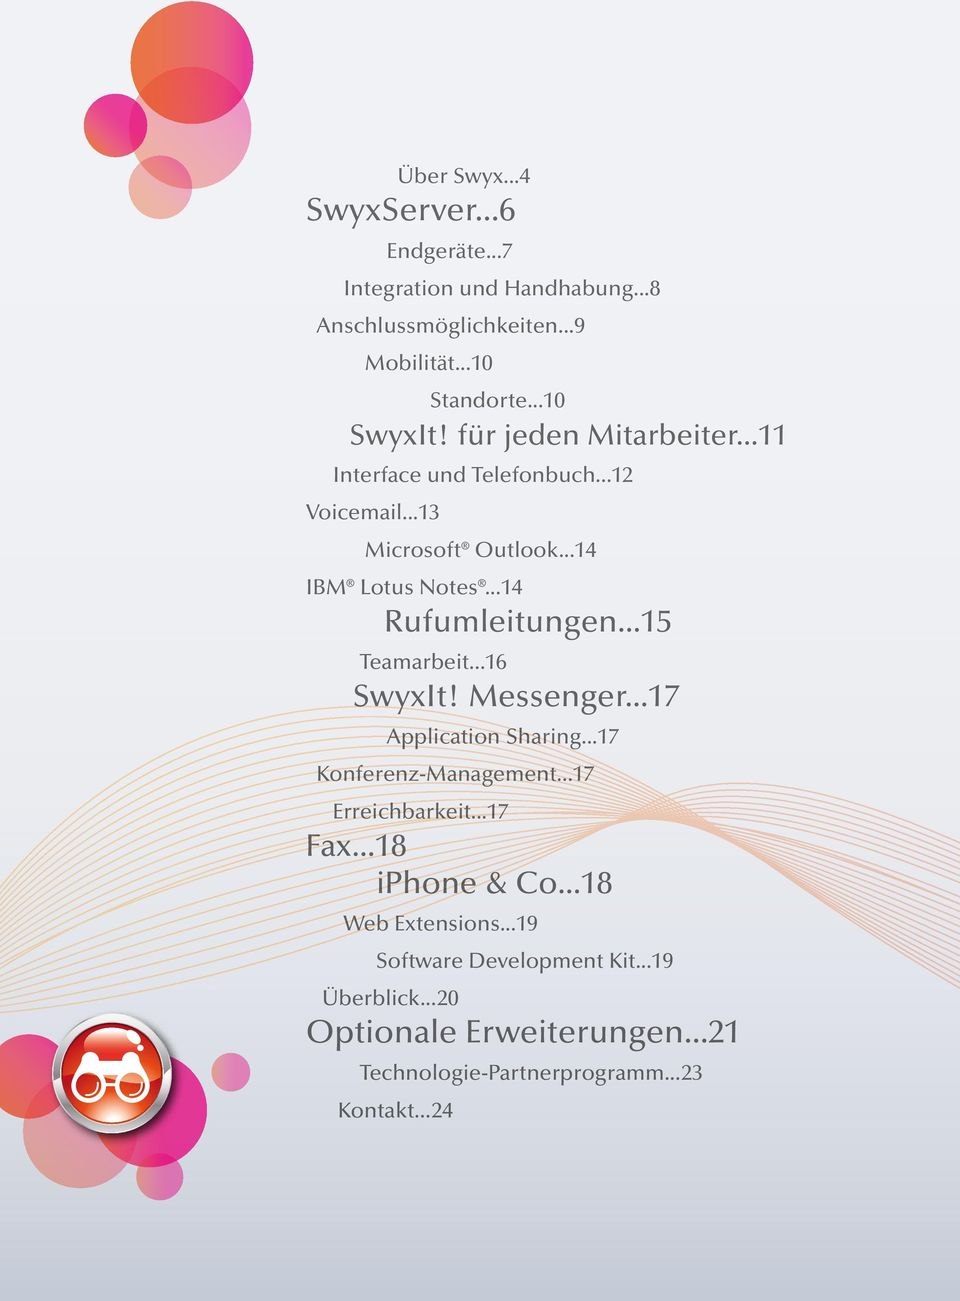 ..15 Teamarbeit...16 SwyxIt! Messenger...17 Application Sharing...17 Konferenz-Management...17 Erreichbarkeit...17 Fax...18 iphone & Co.